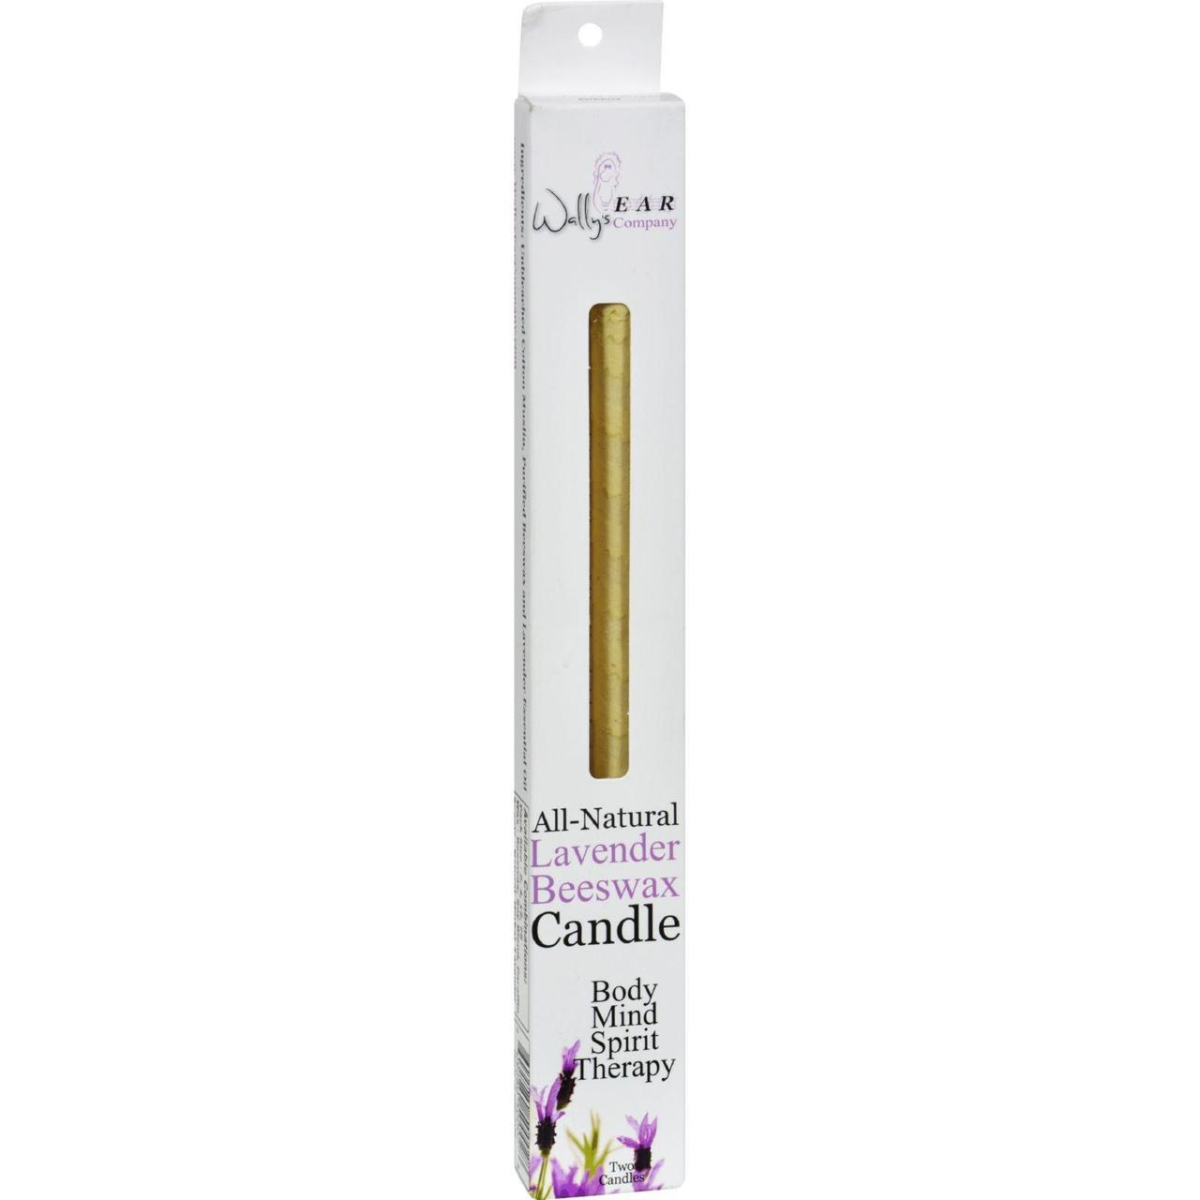 Wallys Natural Products HG0835140 Beeswax Candles Lavender - Pack of 2